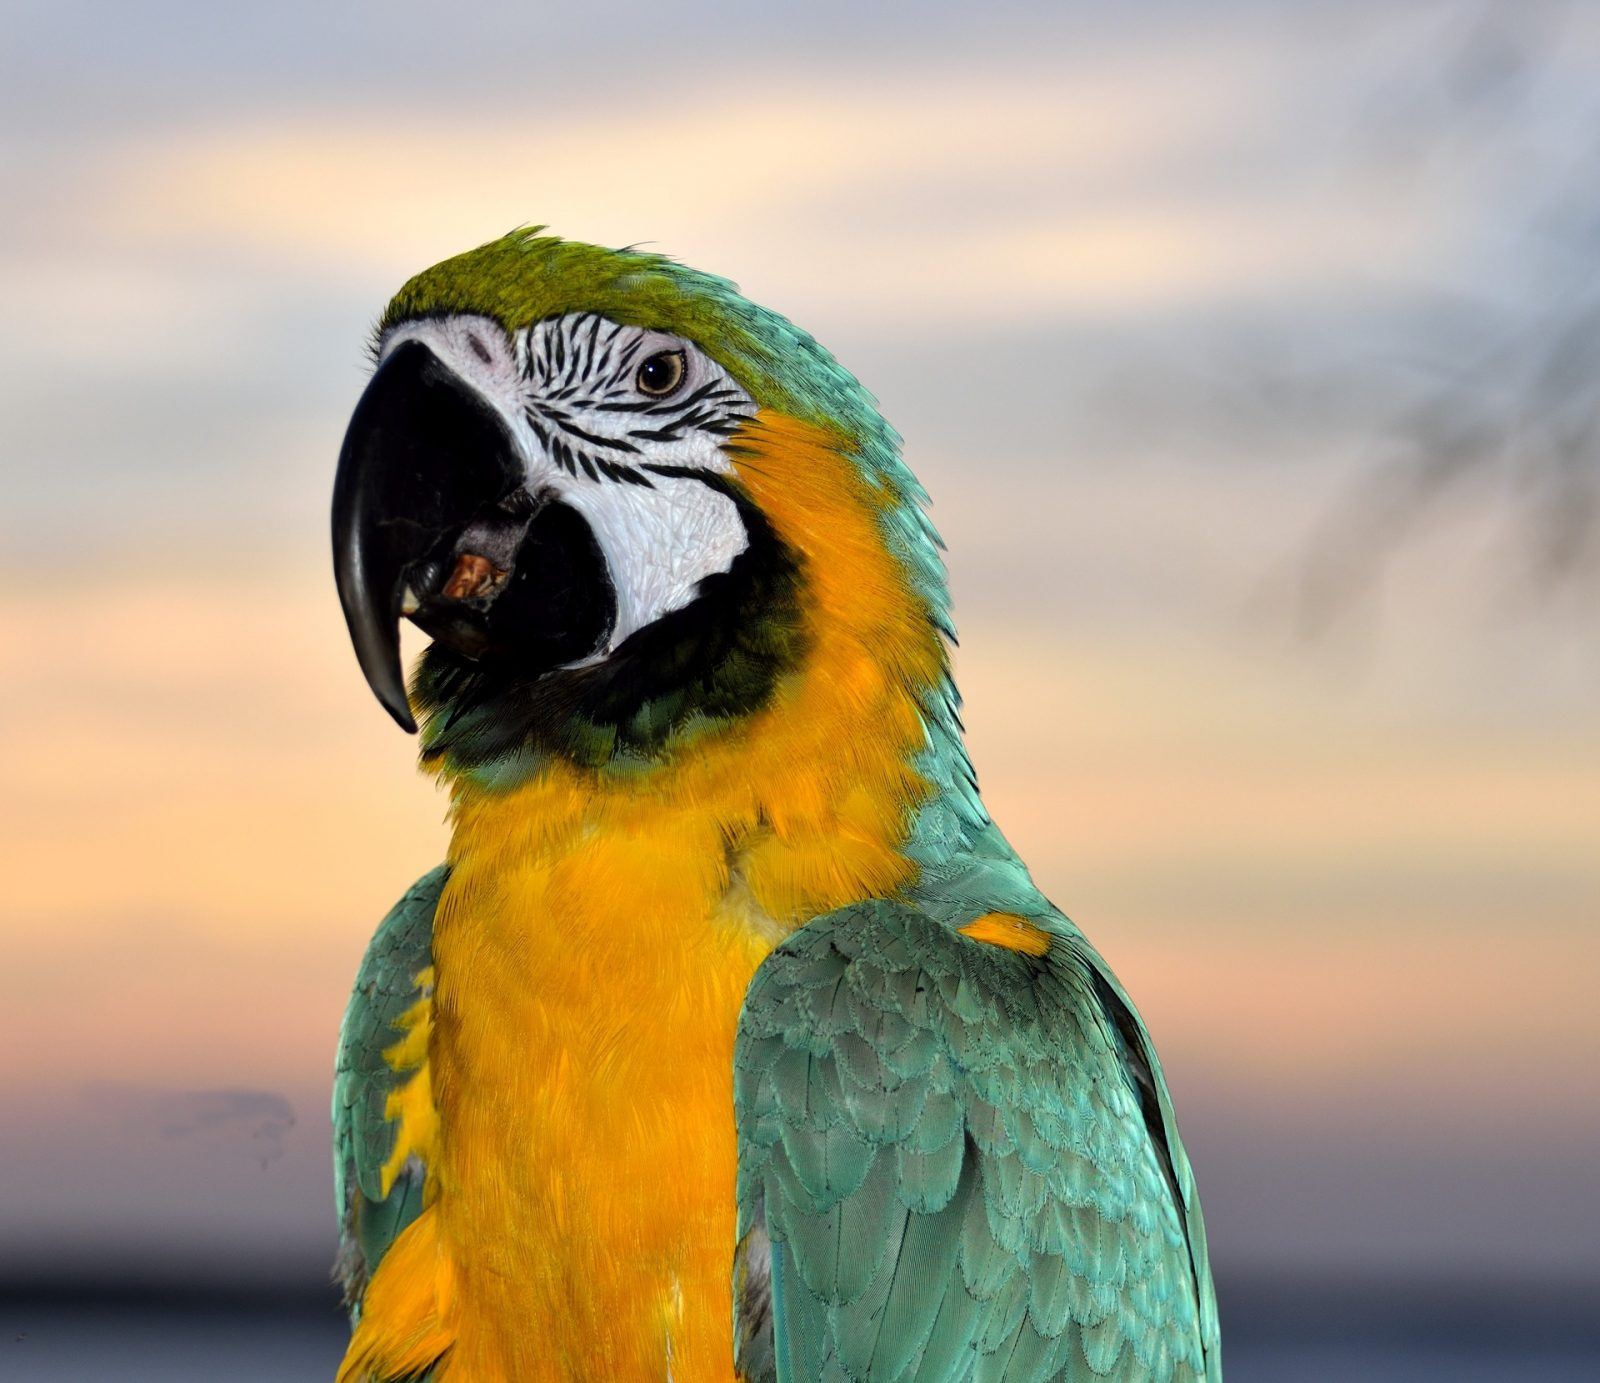 Are Parrots Cold Or Warm Blooded? - Parrot Website